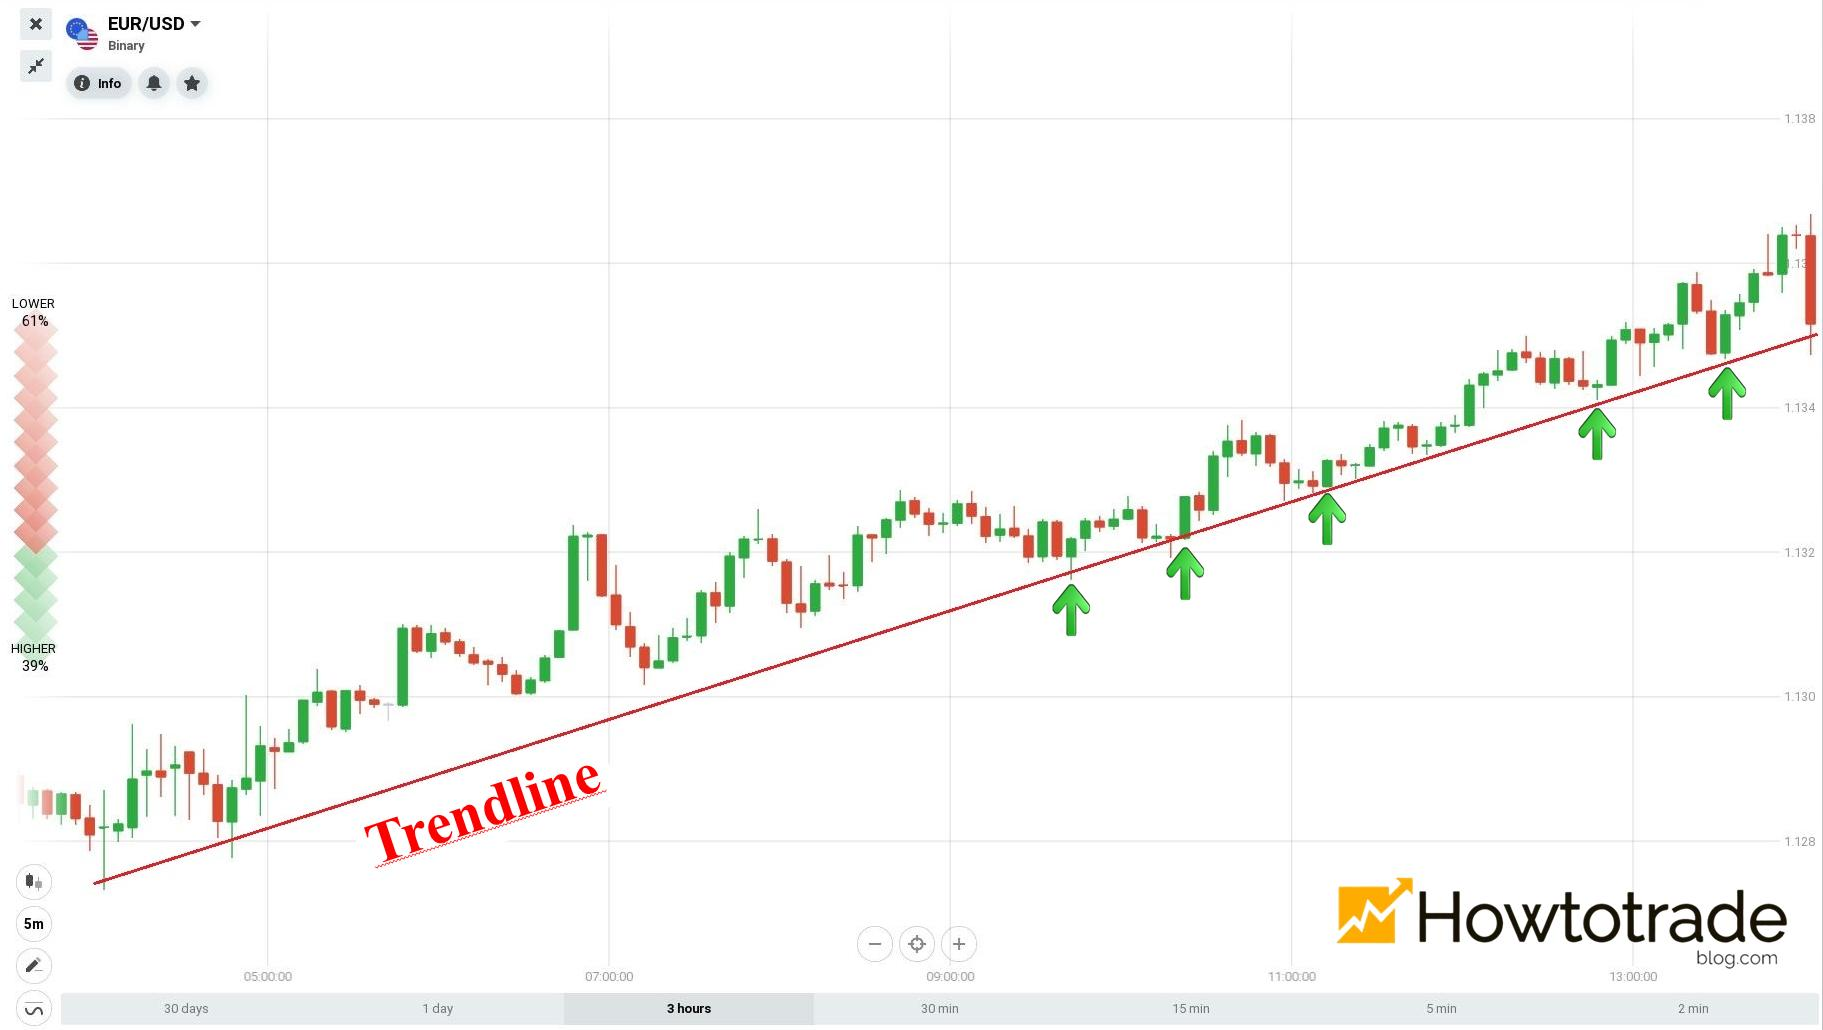 The perfect uptrend pattern with a trendline